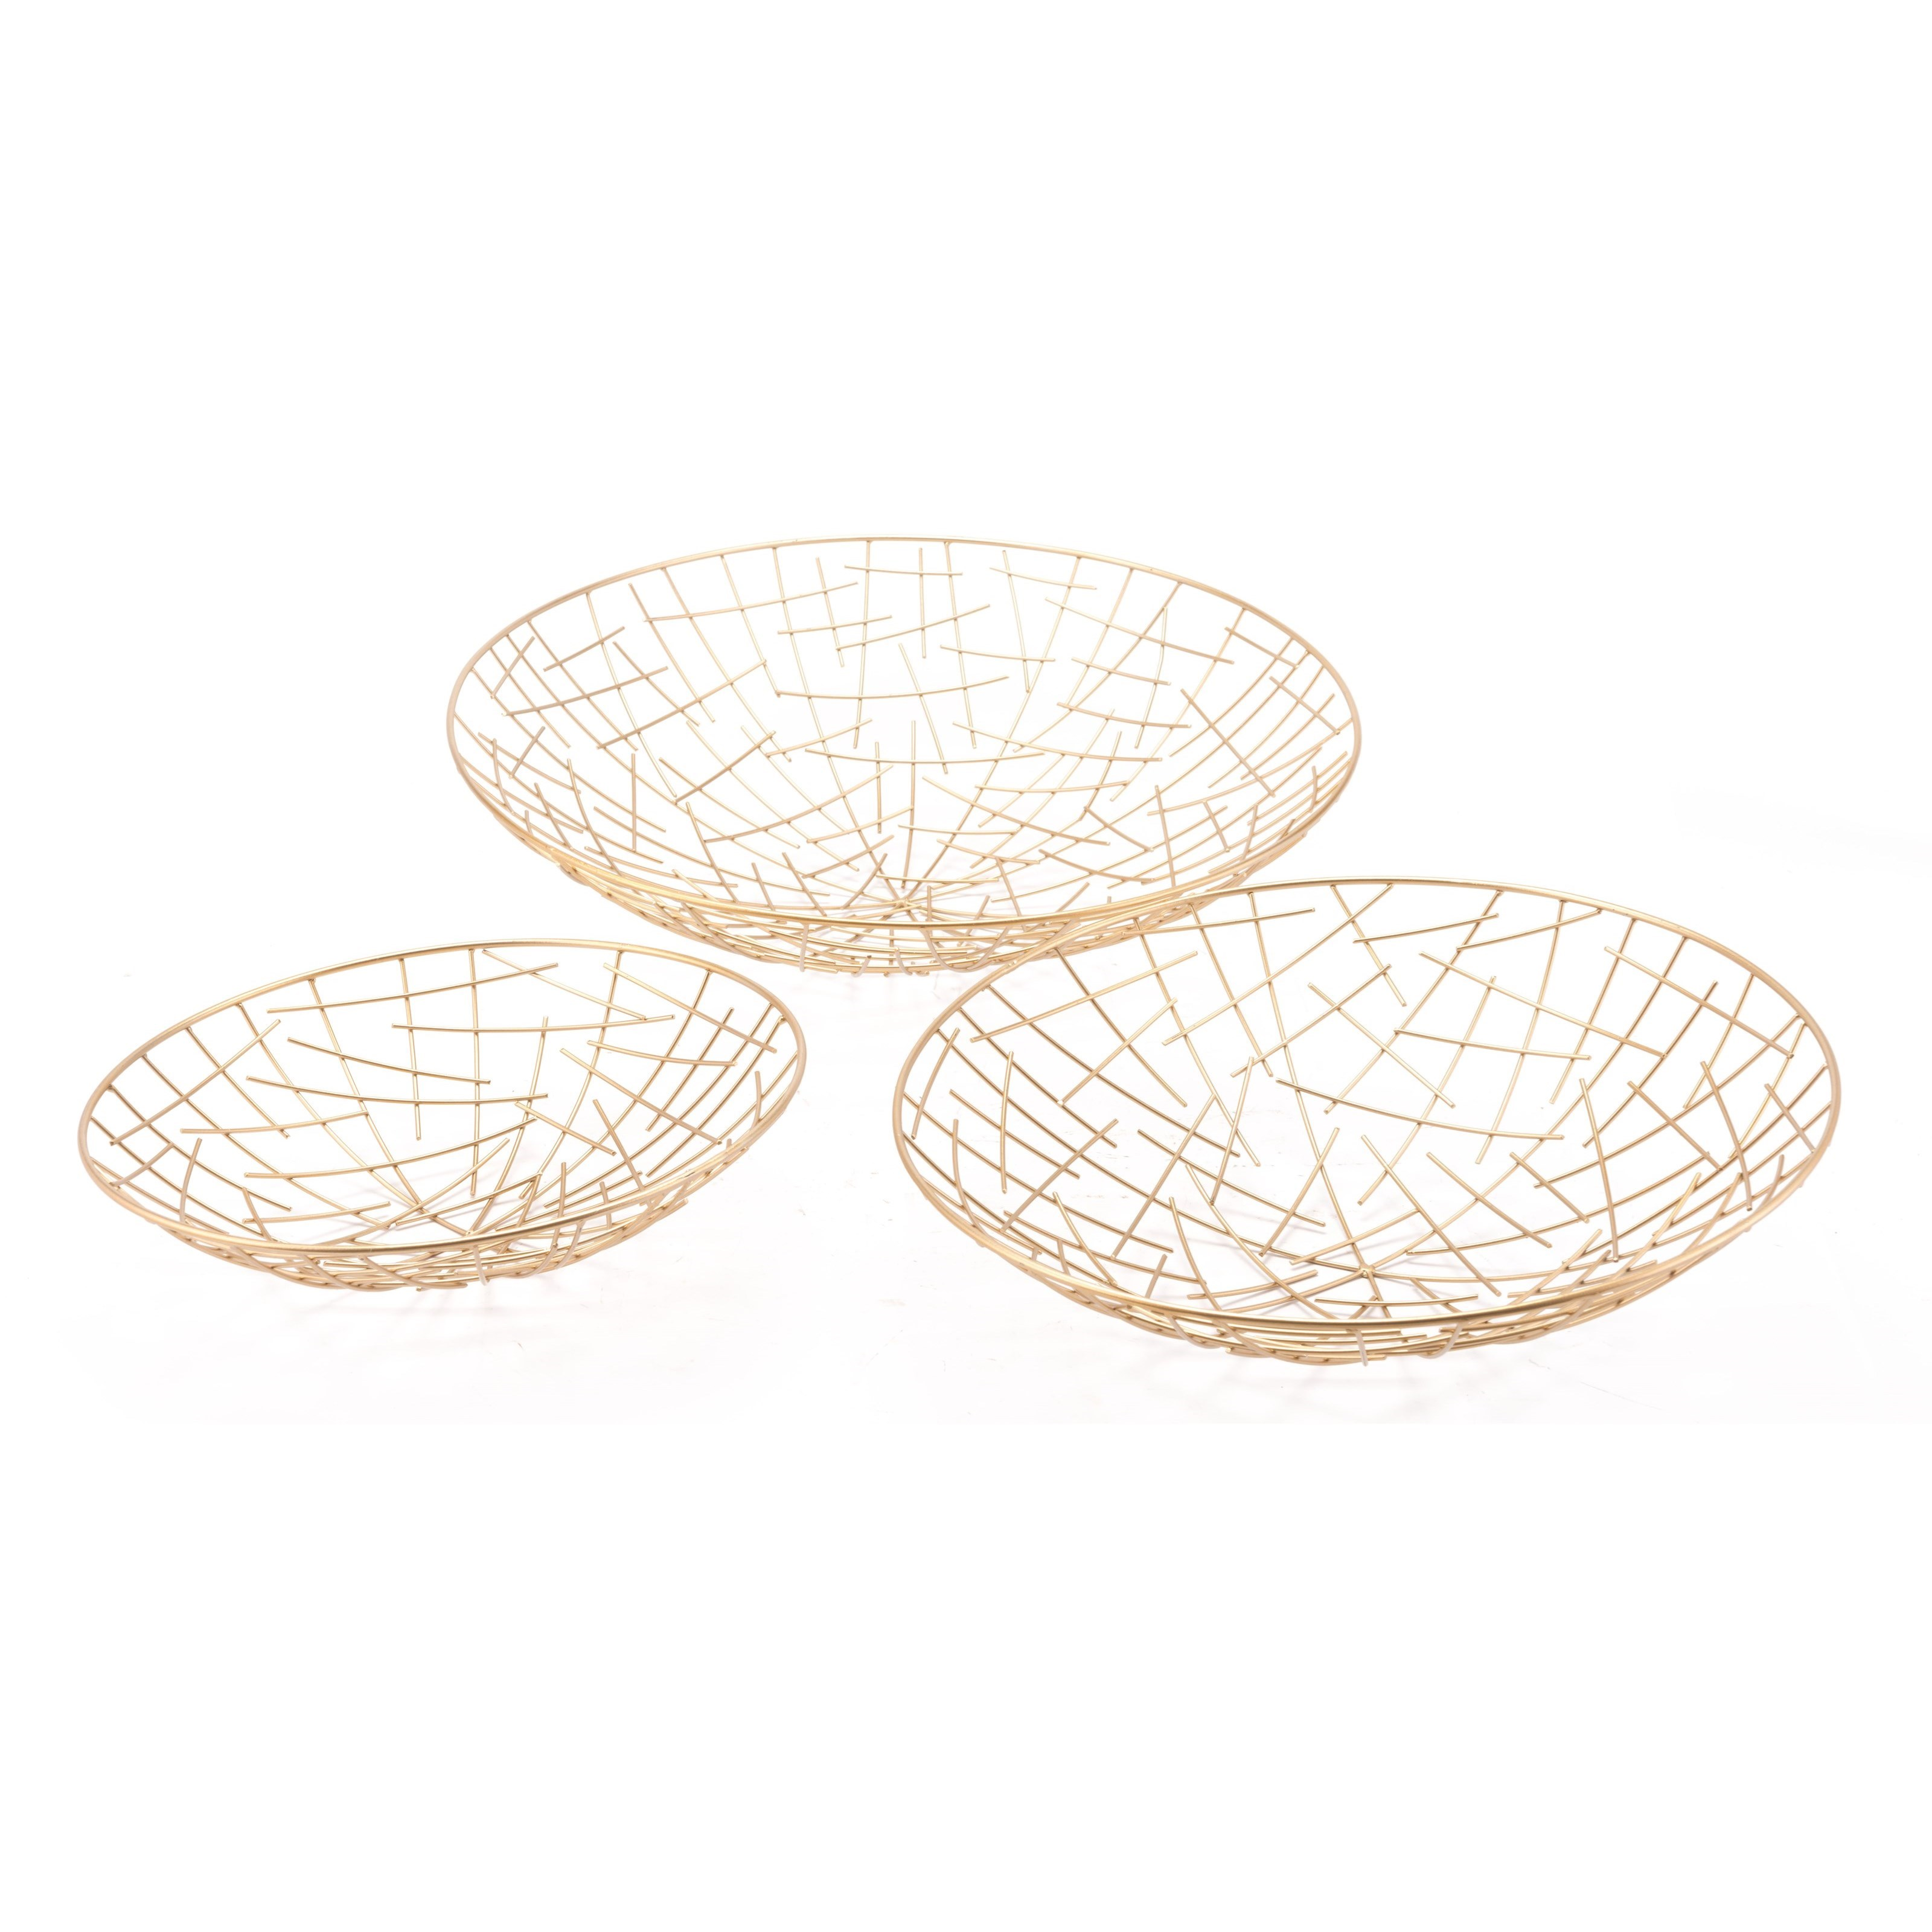 Zuo Boxes, Bowls and Trays Set of 3 Gold Plate - Item Number: A10818